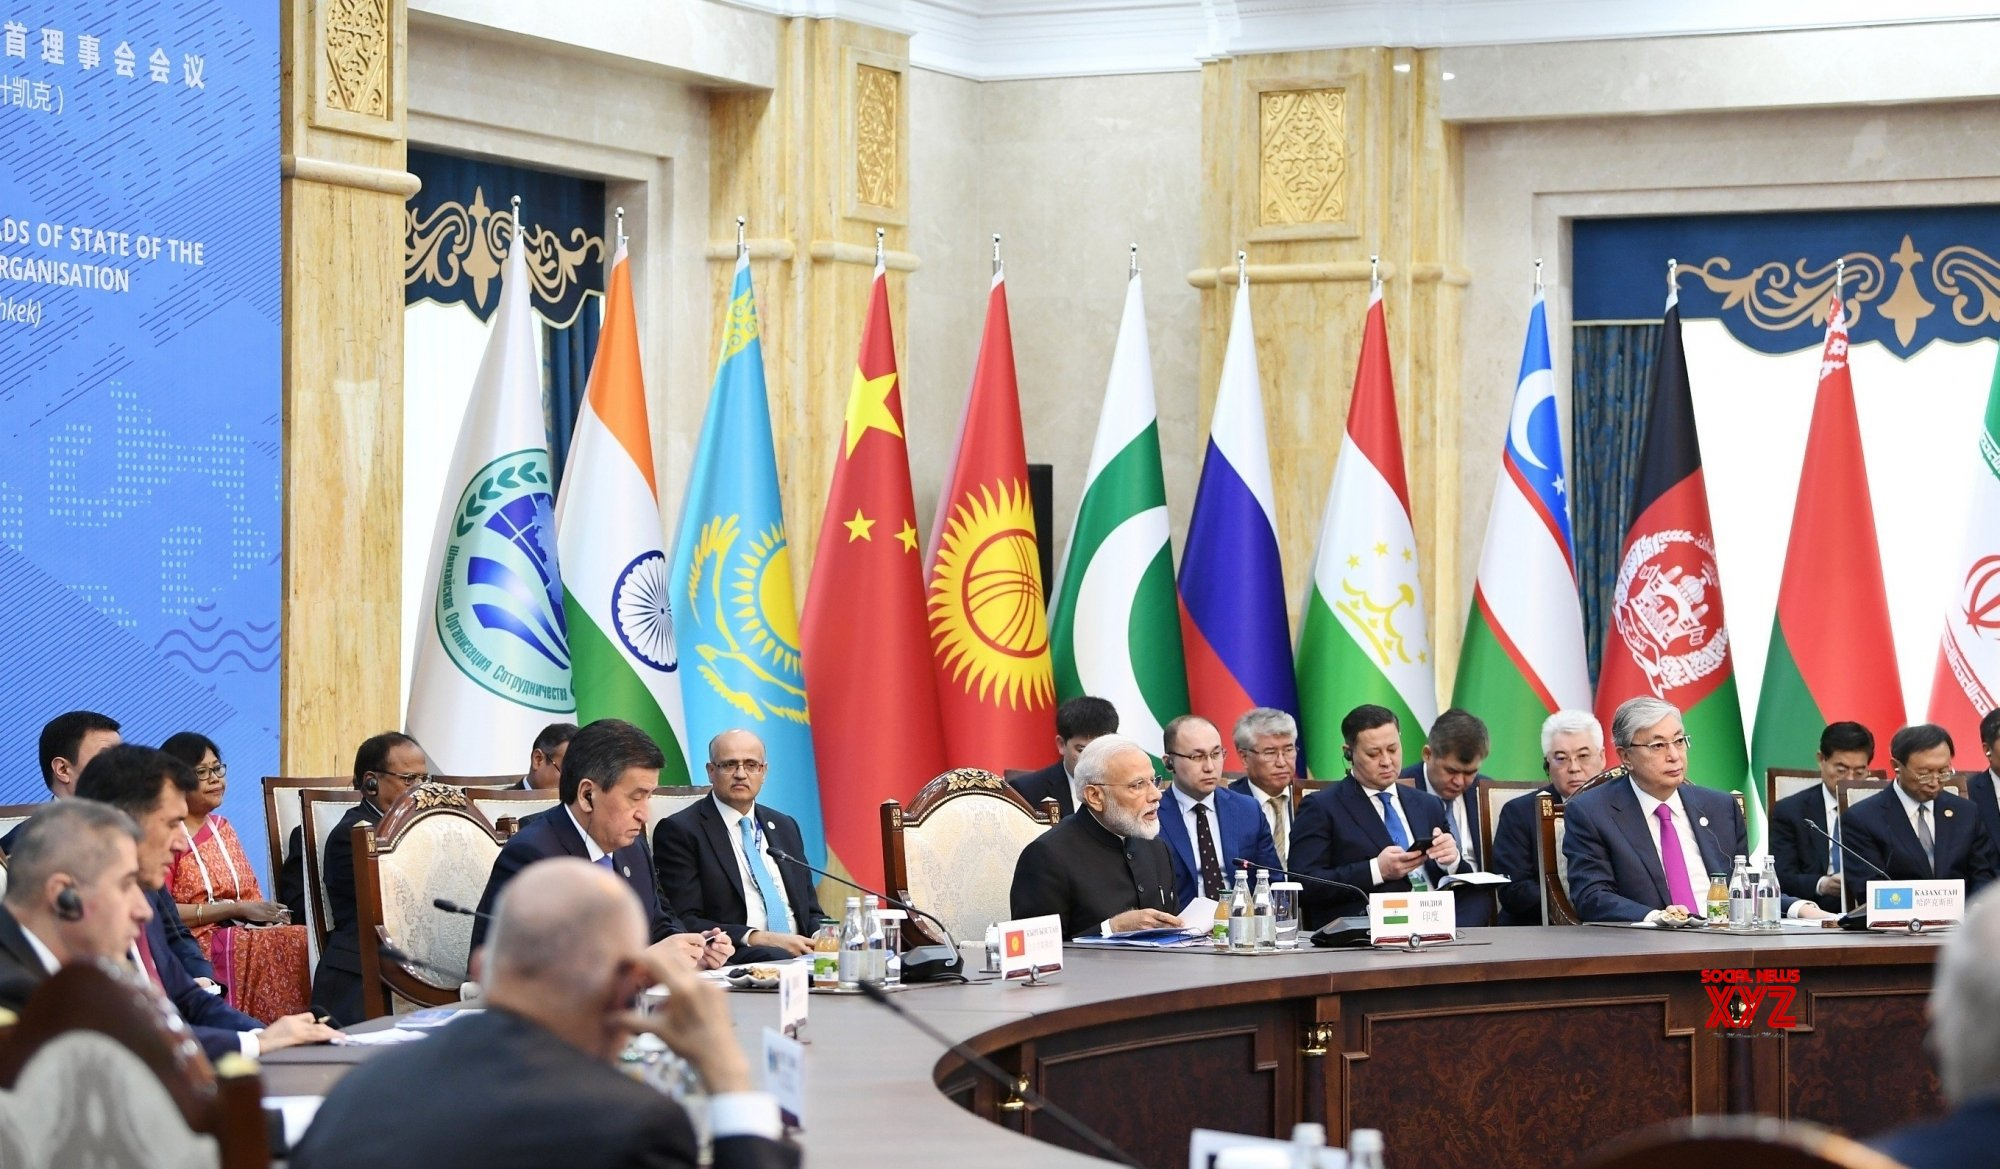 Bishkek (Kyrgyzstan): PM Modi at the delegation level meeting of 2019 SCO Summit #Gallery